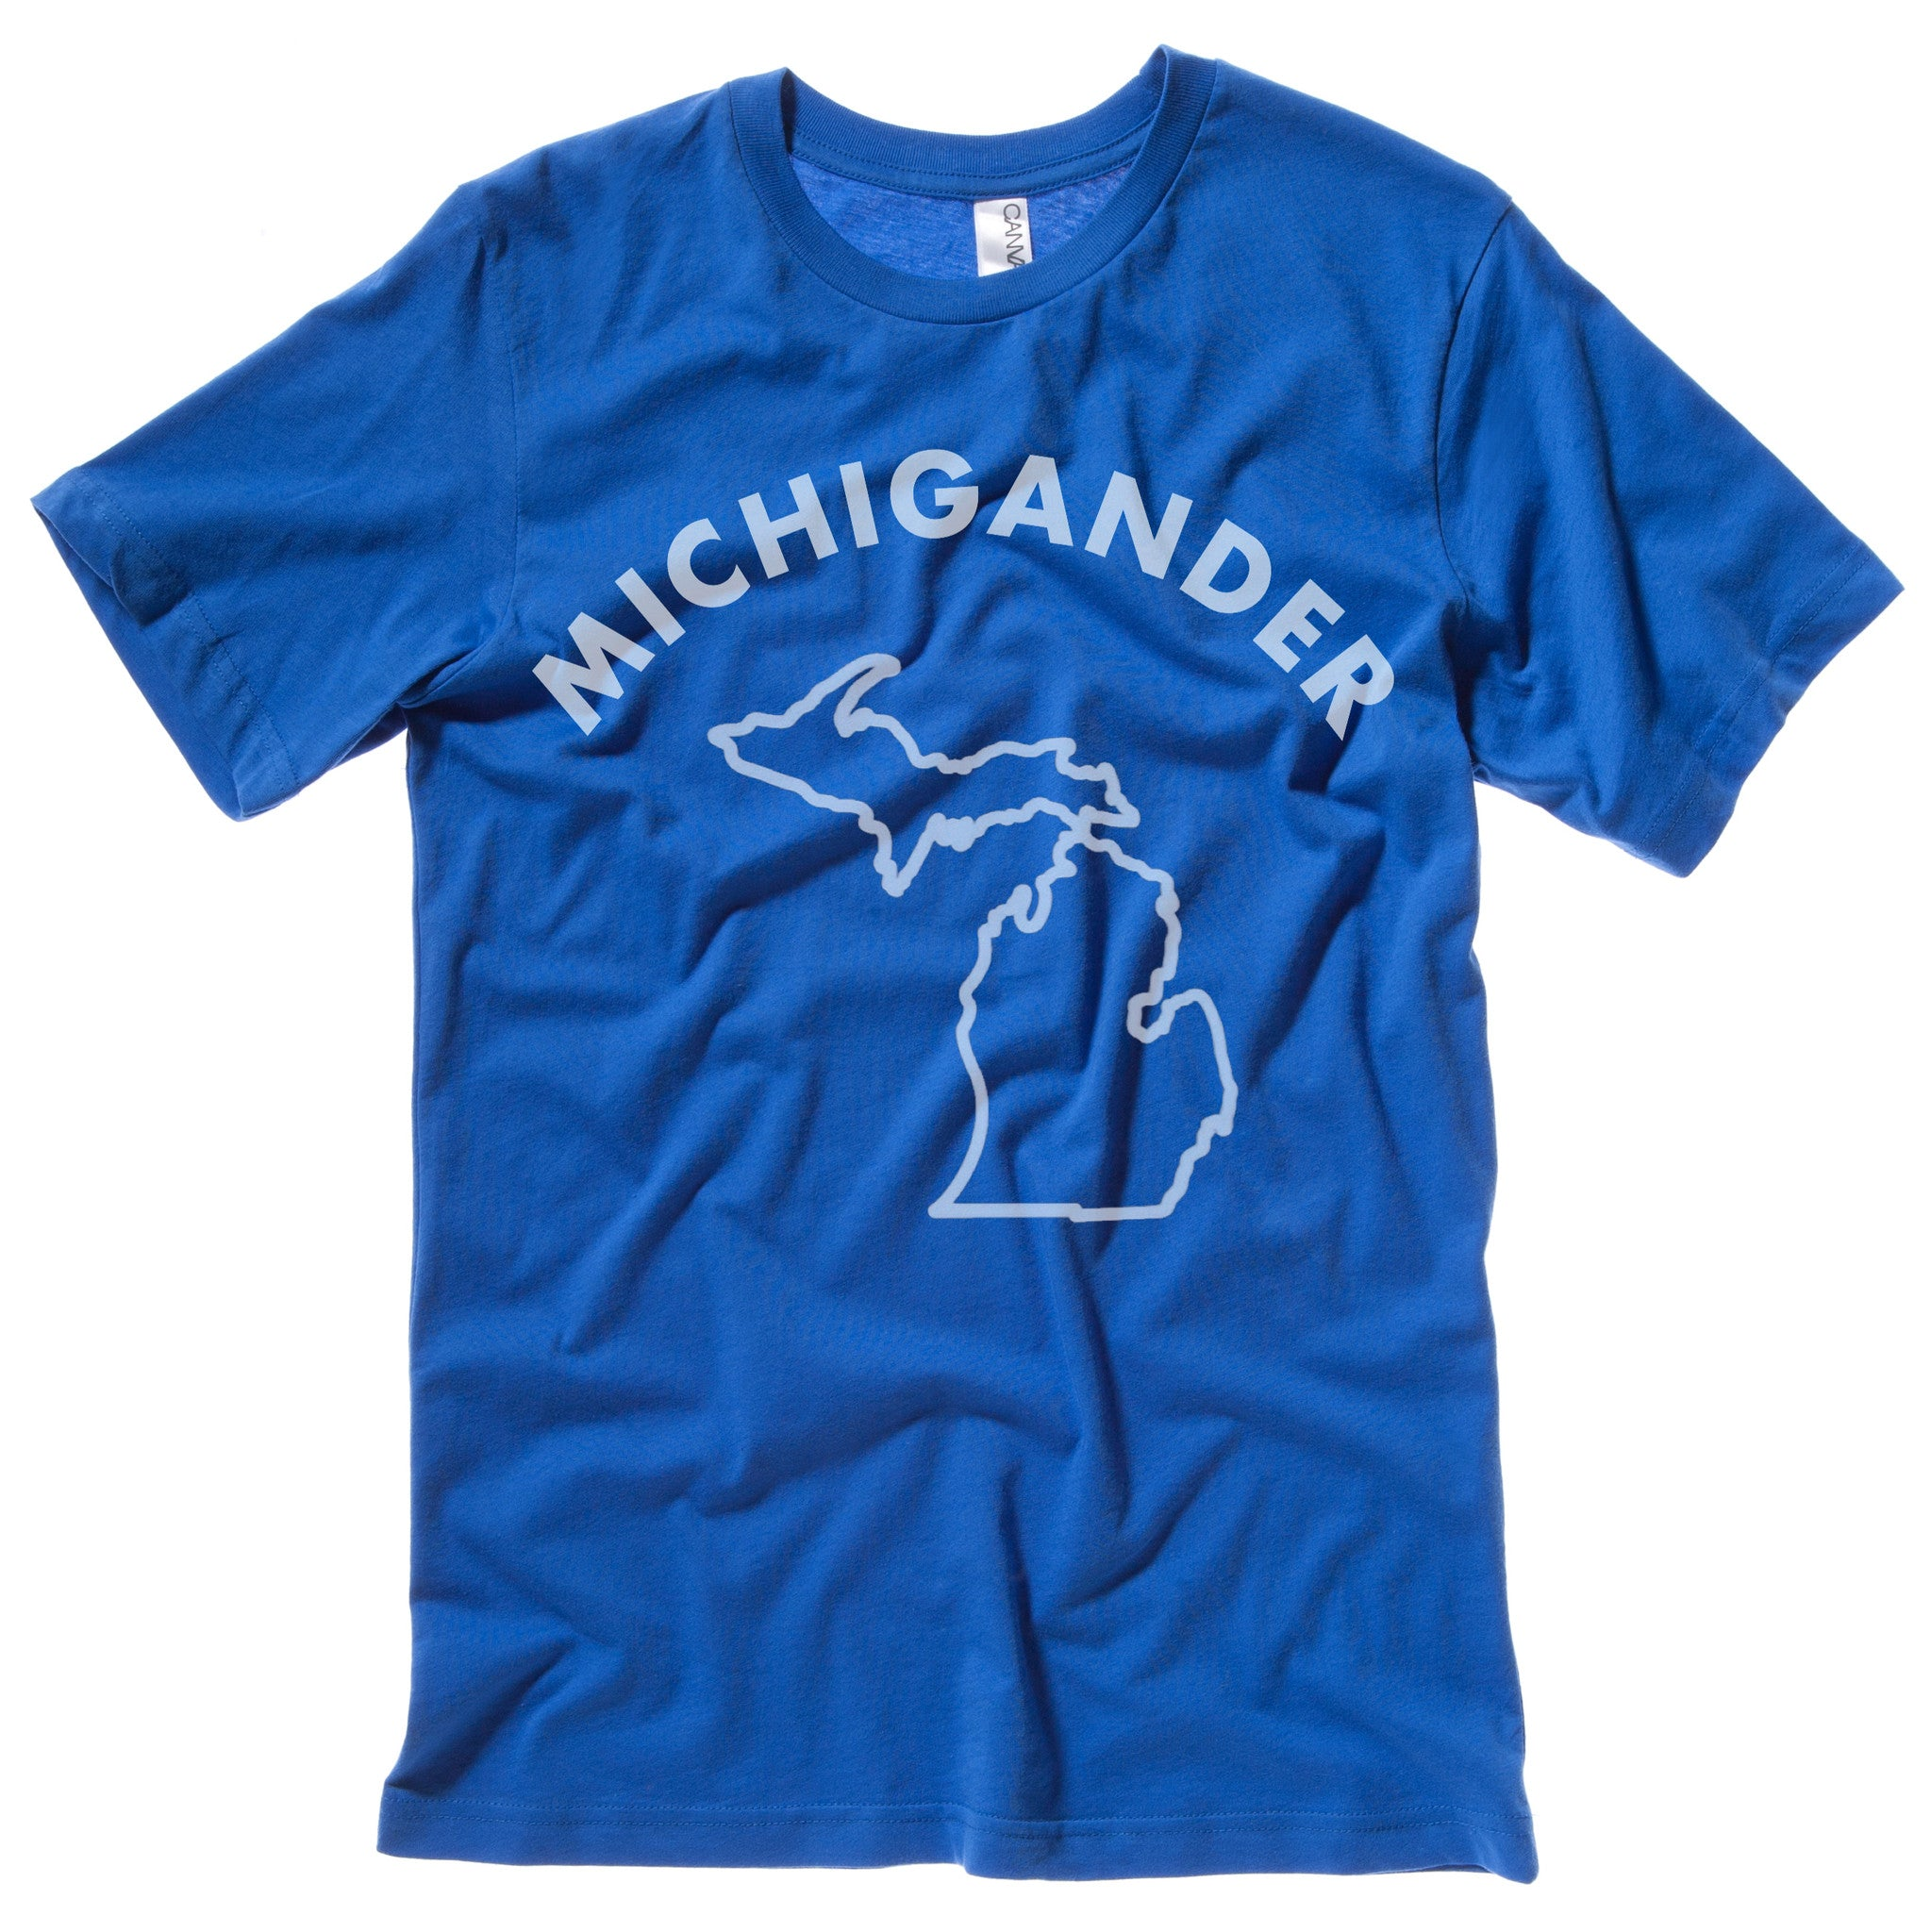 Detroit Street Apparel MICHIGANDER T-Shirt